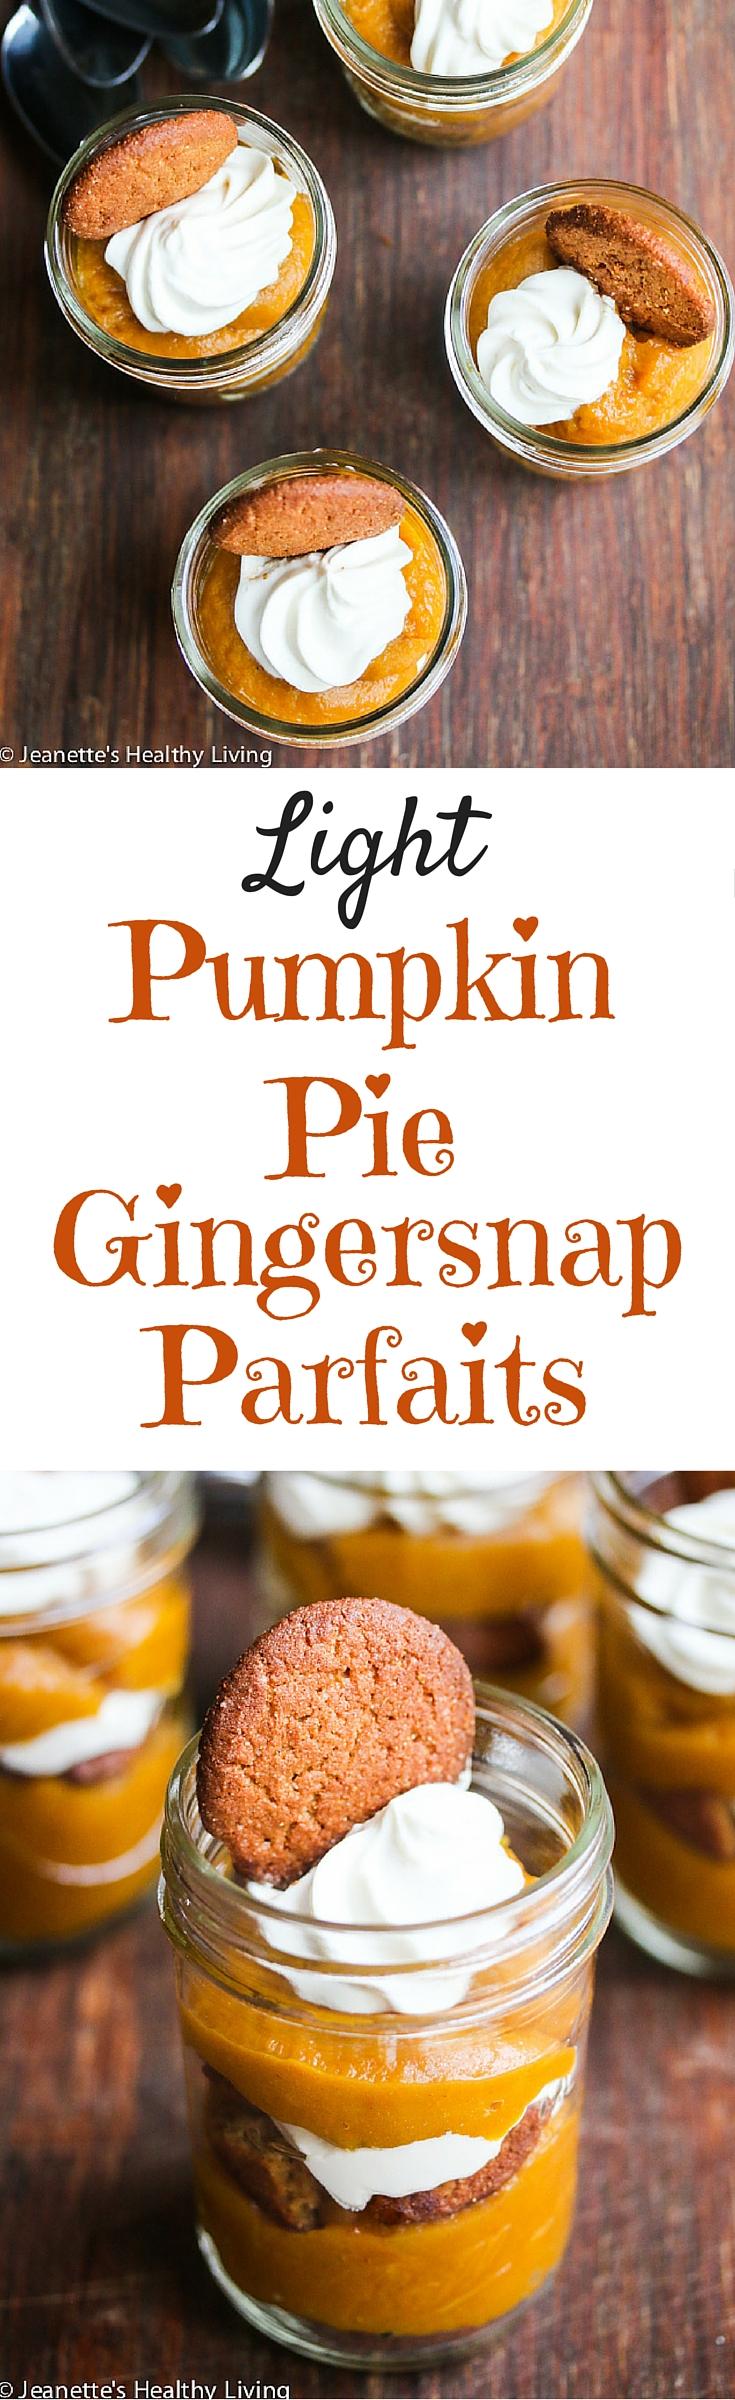 light pumpkin pie gingersnap parfait recipe this easy to assemble pumpkin pie is served in. Black Bedroom Furniture Sets. Home Design Ideas